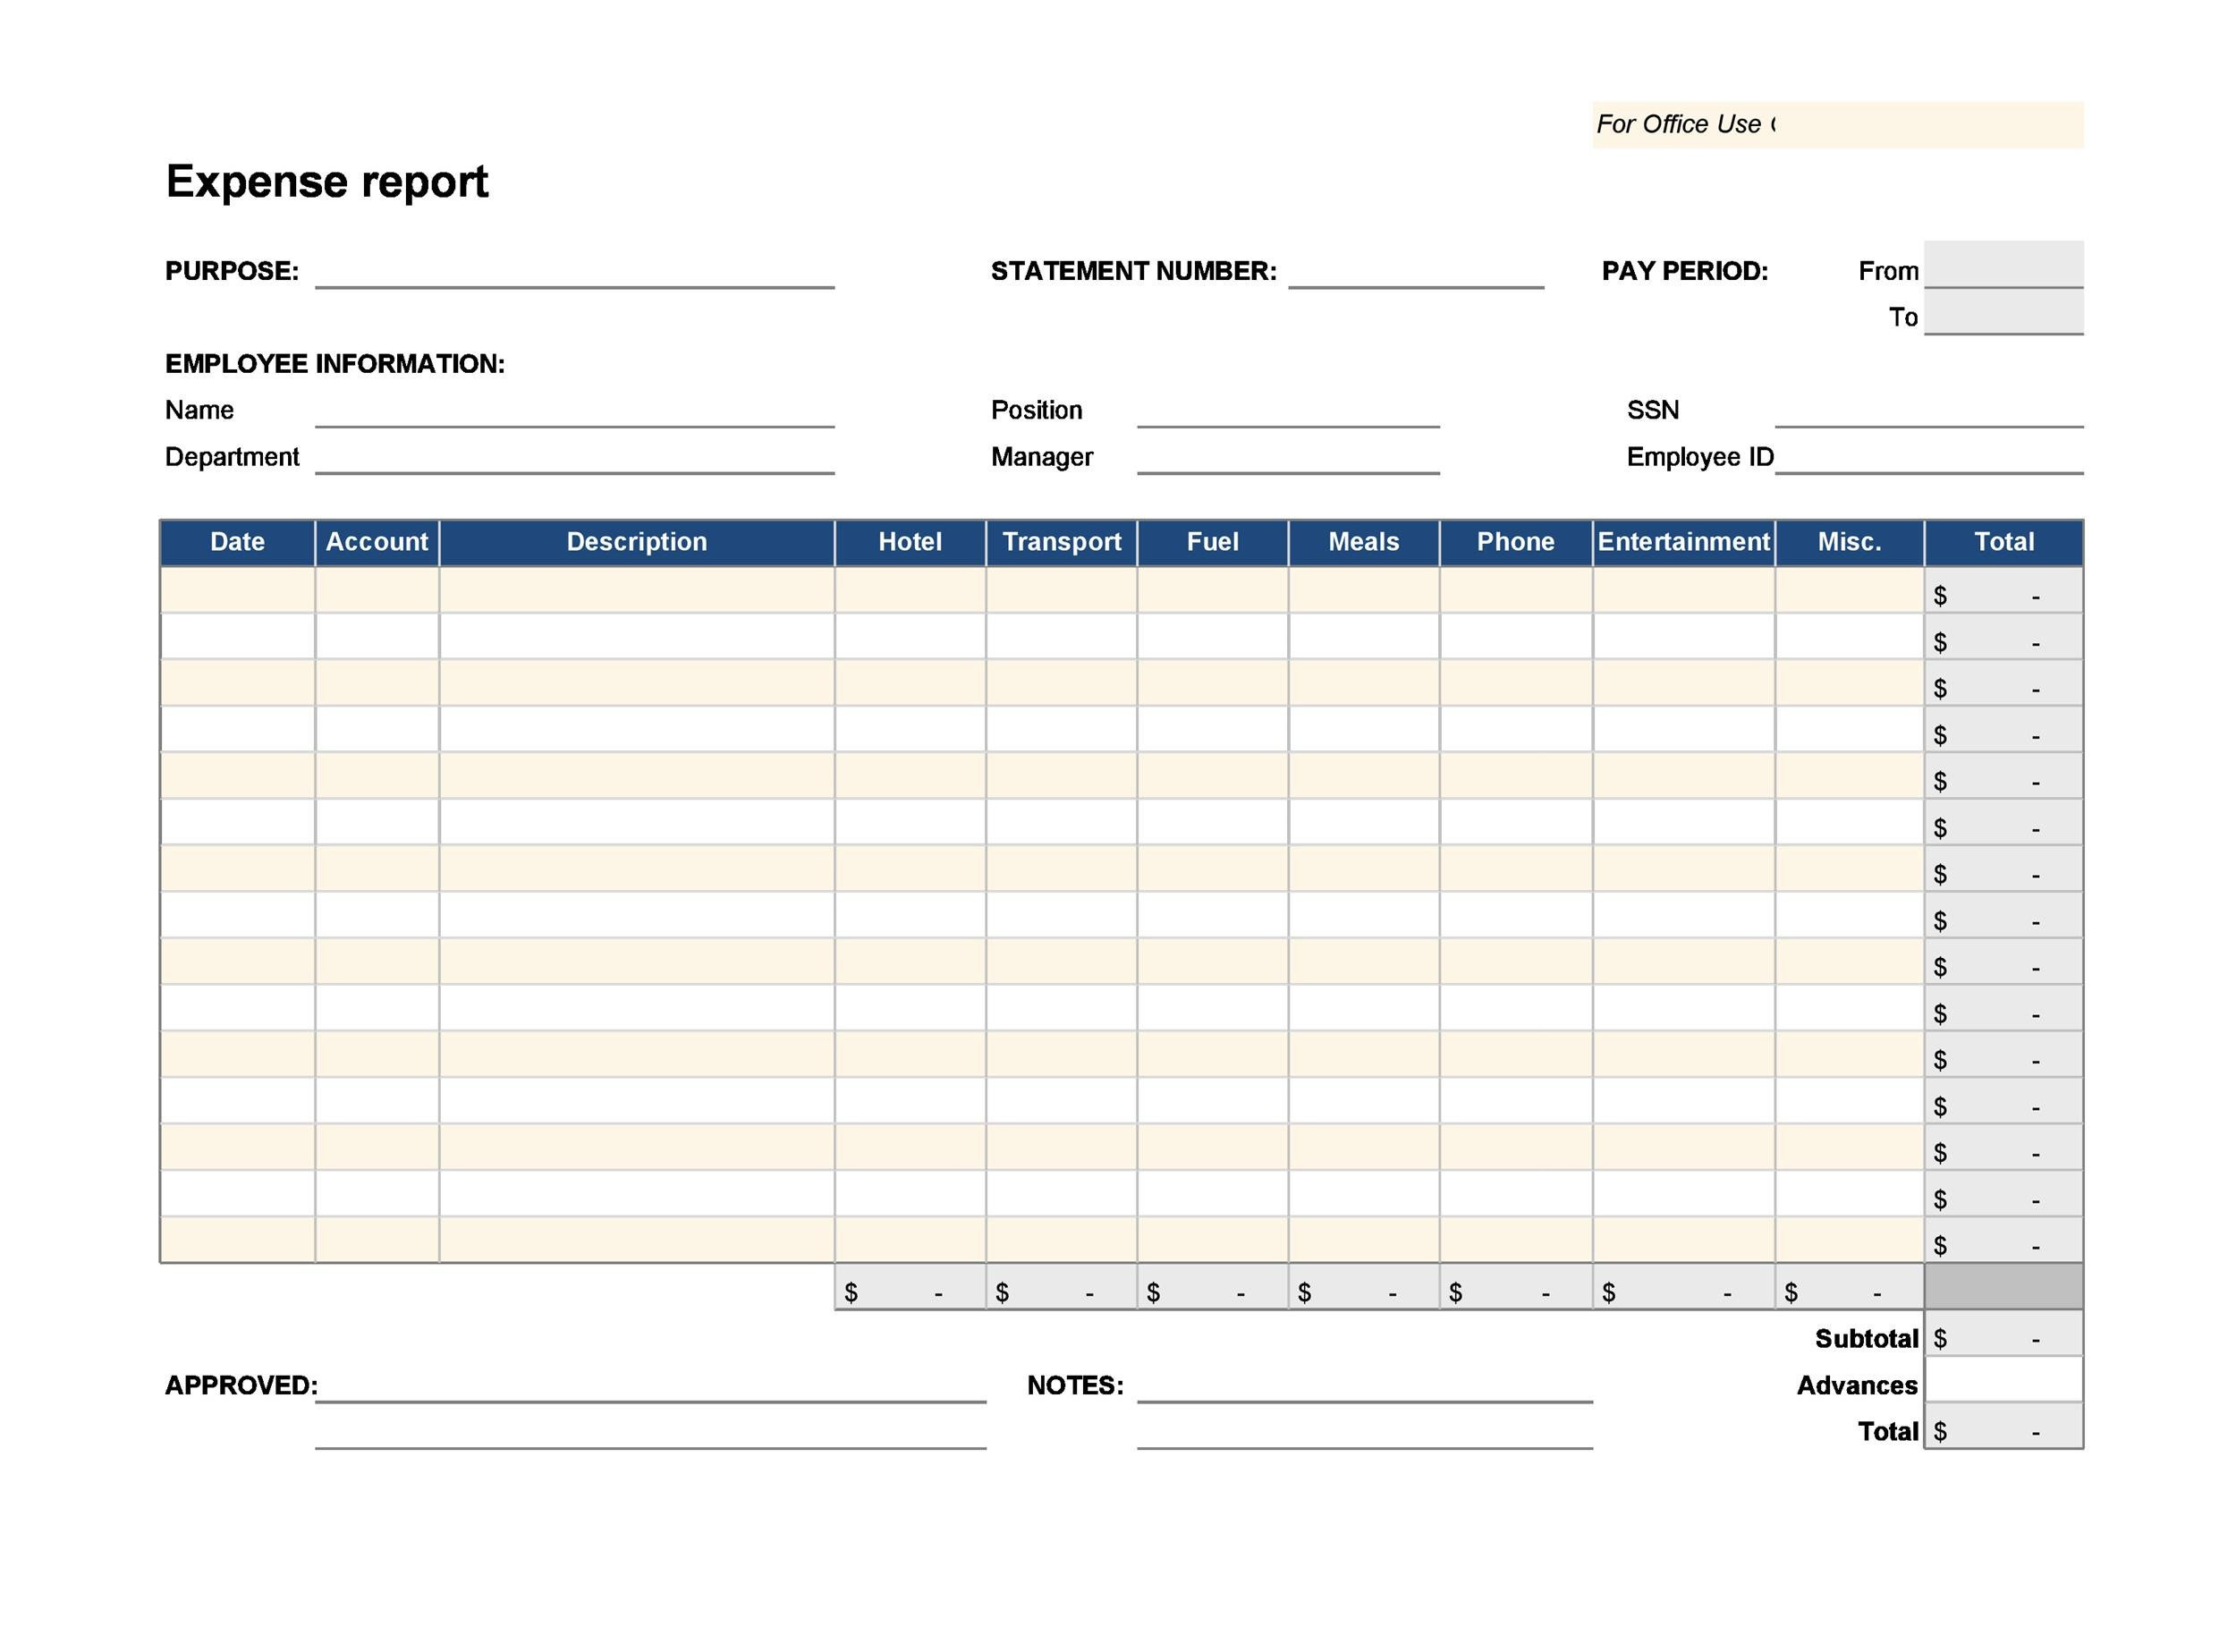 40+ Expense Report Templates to Help you Save Money - Template Lab - printable expense report